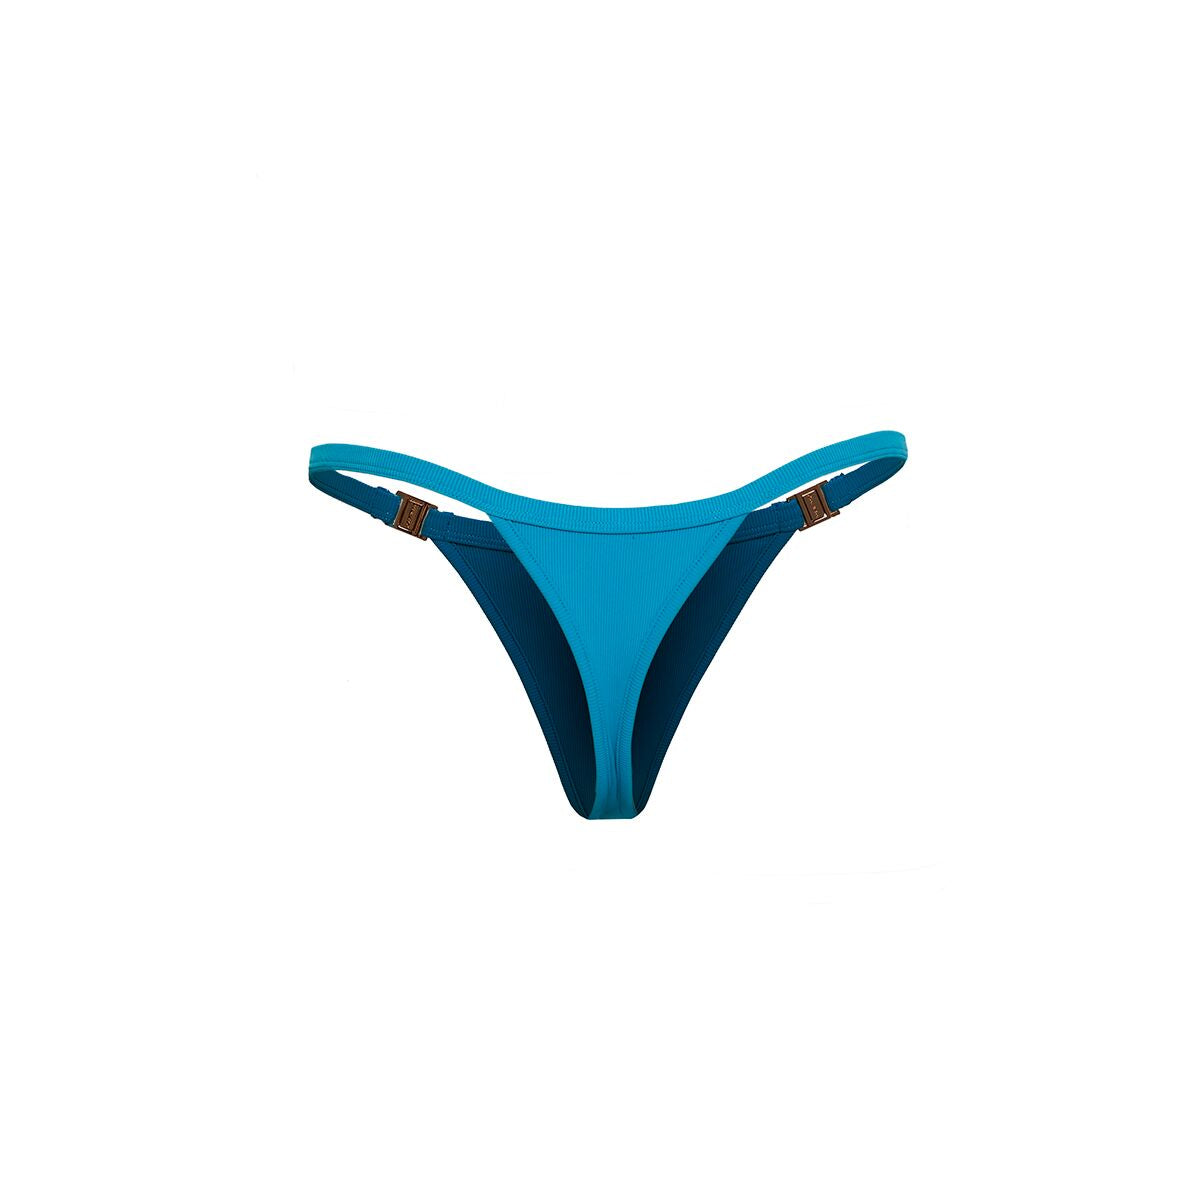 OLIVIA SPORT BOTTOMS TEAL